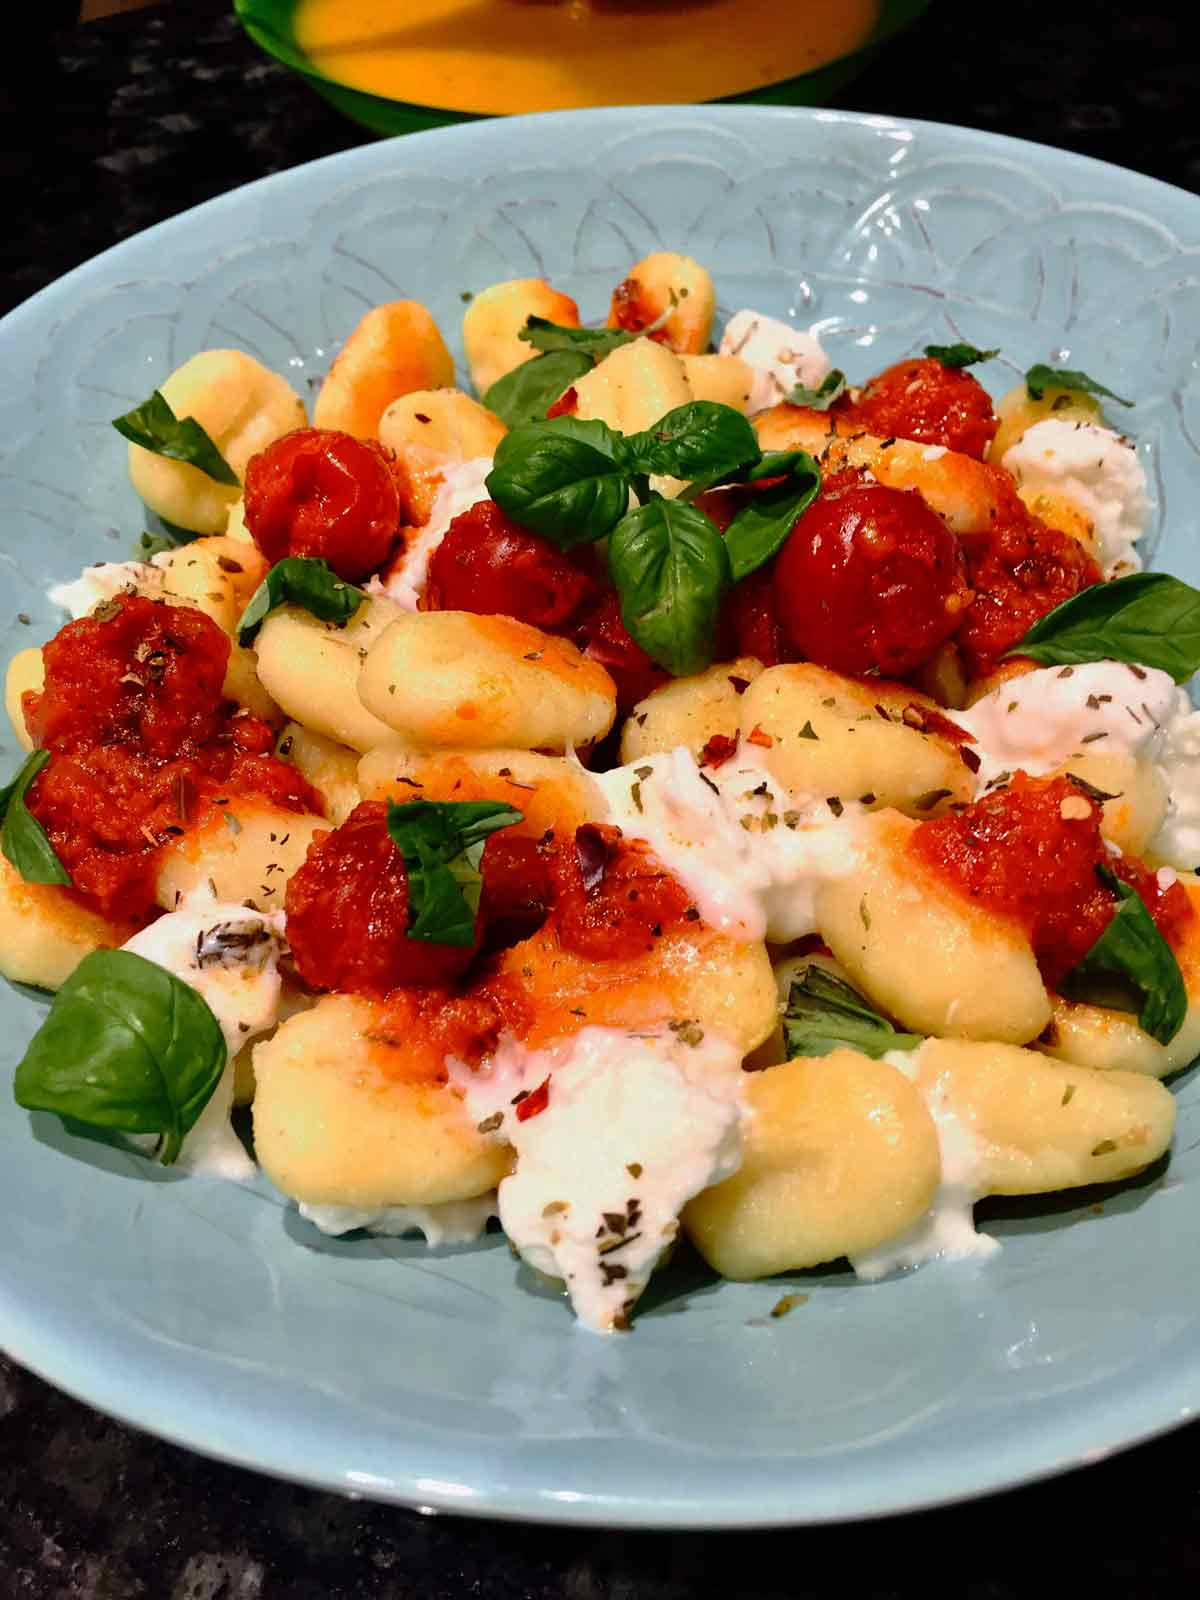 Gnocchi With Buffalo Mozzarella And Whole Cherry Tomatoes Sauce